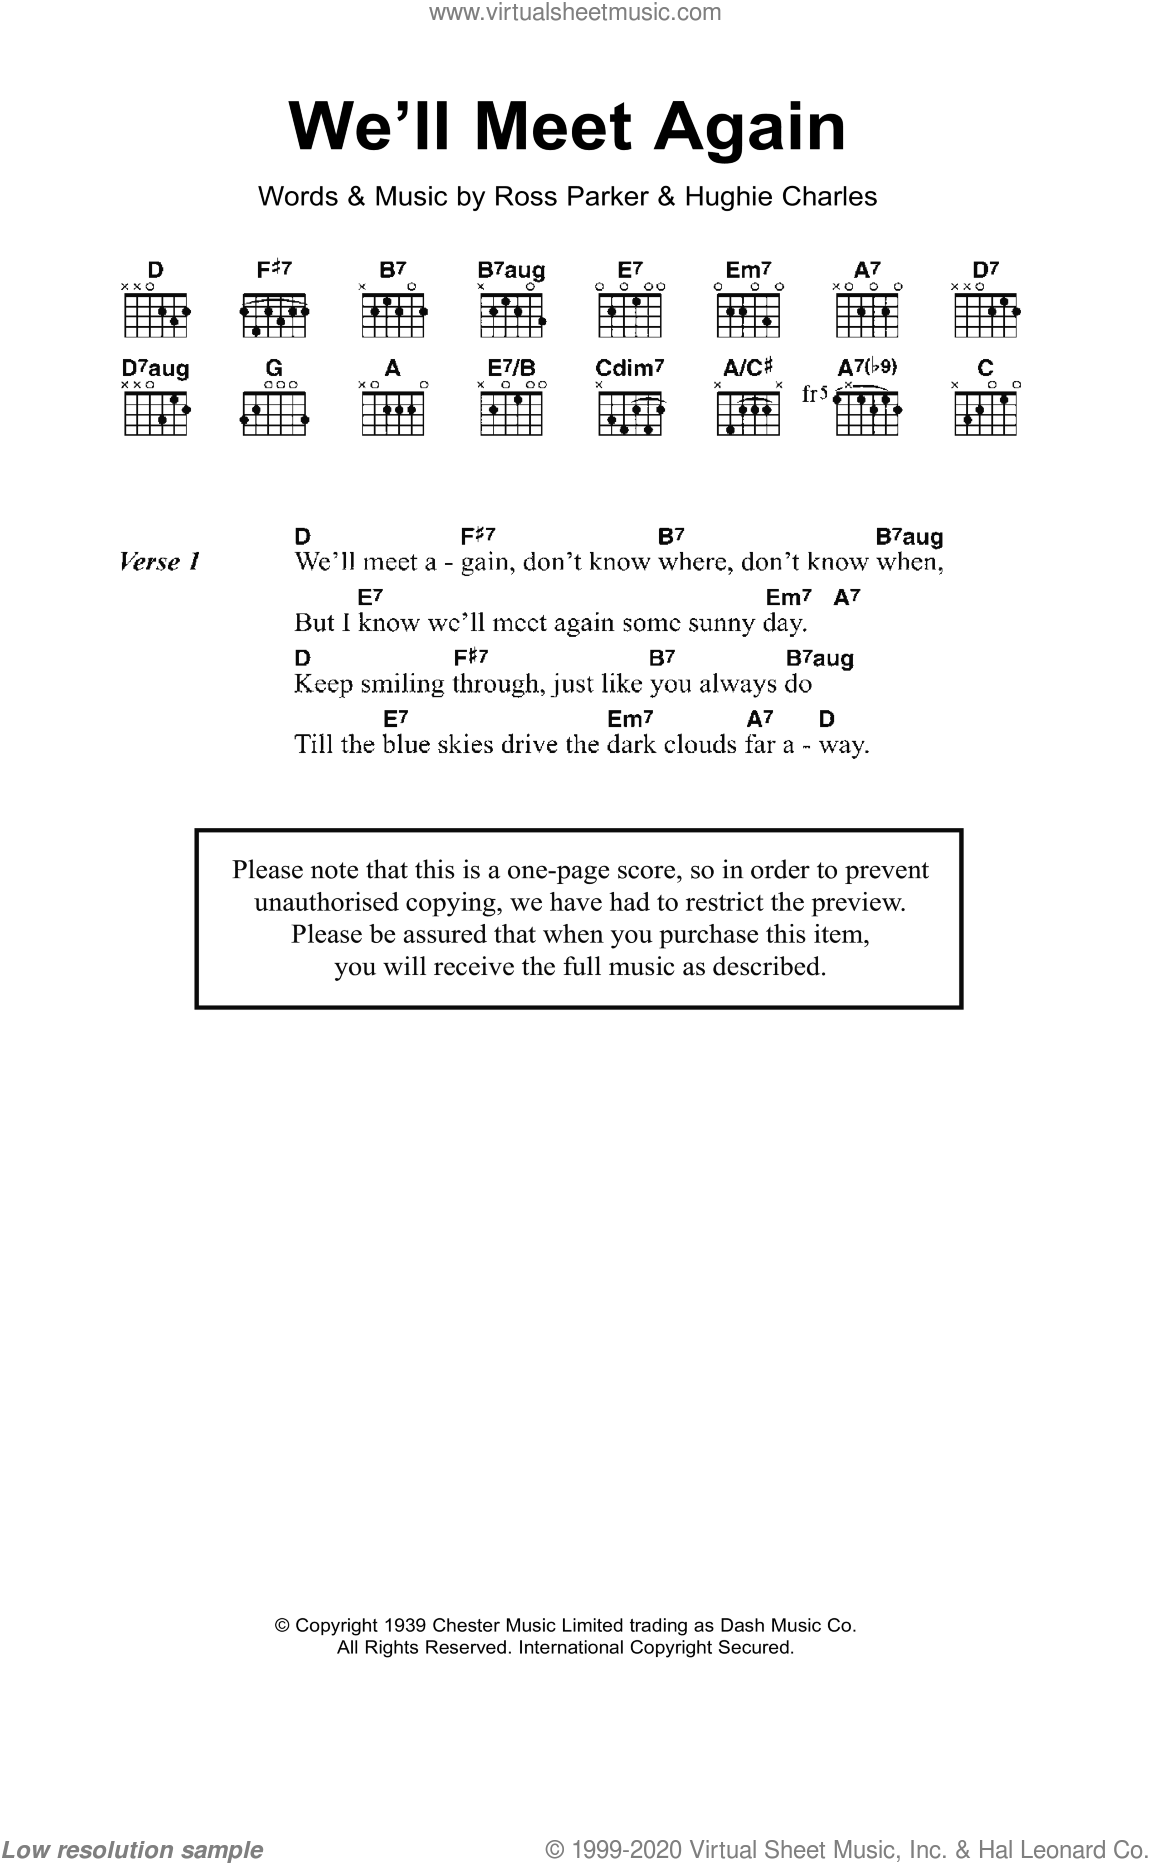 We'll Meet Again sheet music for guitar (chords) by Hughie Charles and Ross Parker. Score Image Preview.